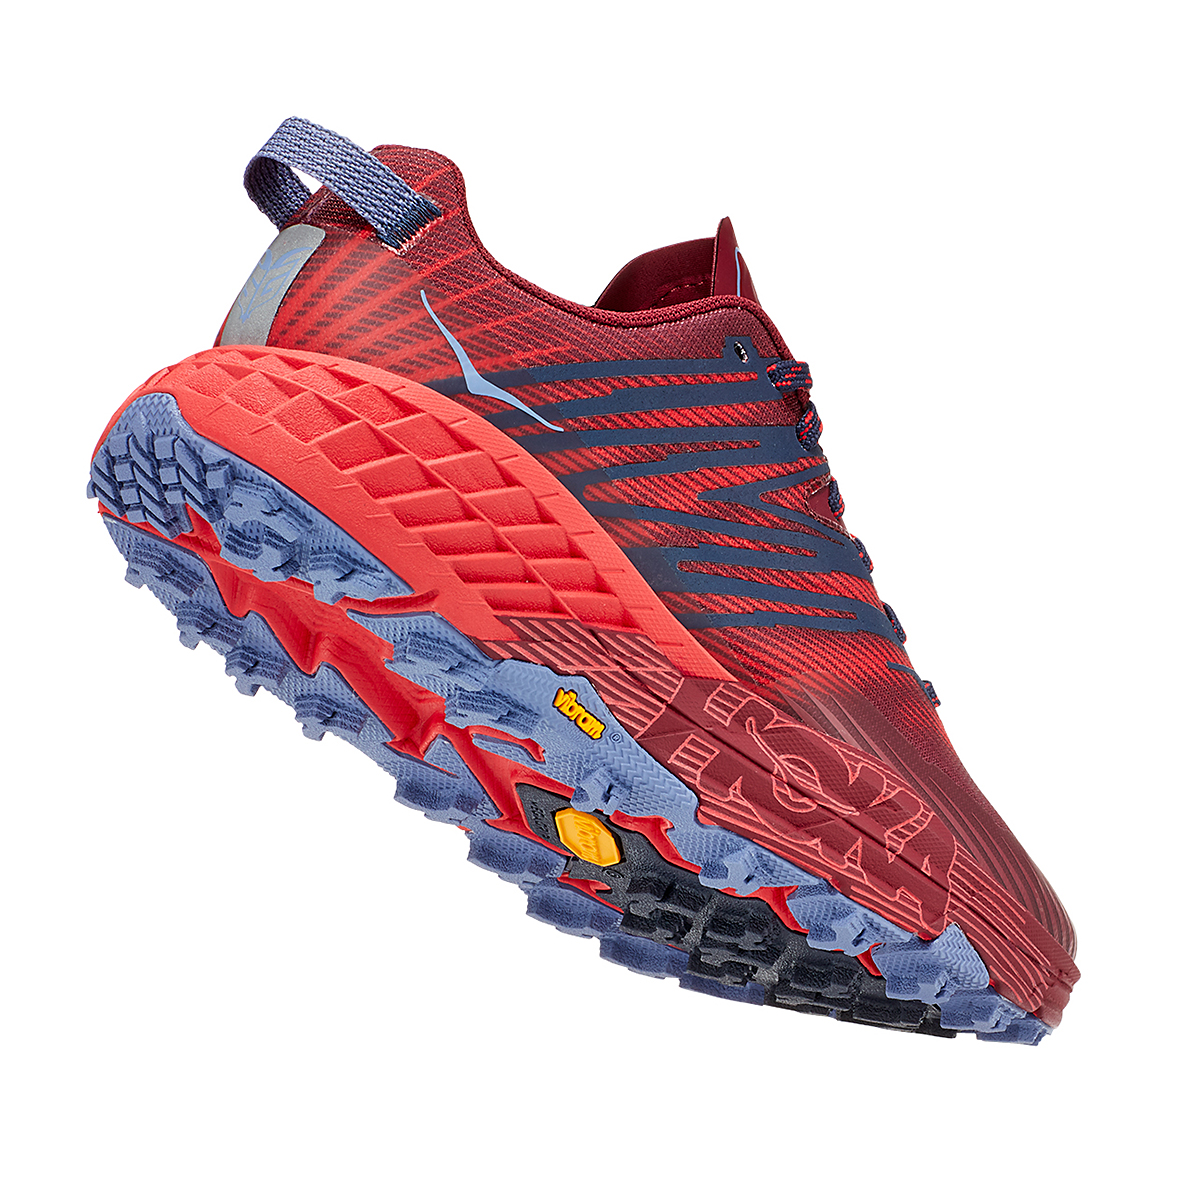 Women's Hoka One One Speedgoat 4 Trail Running Shoe - Color: Cordovan/High Risk Red - Size: 5 - Width: Regular, Cordovan/High Risk Red, large, image 5